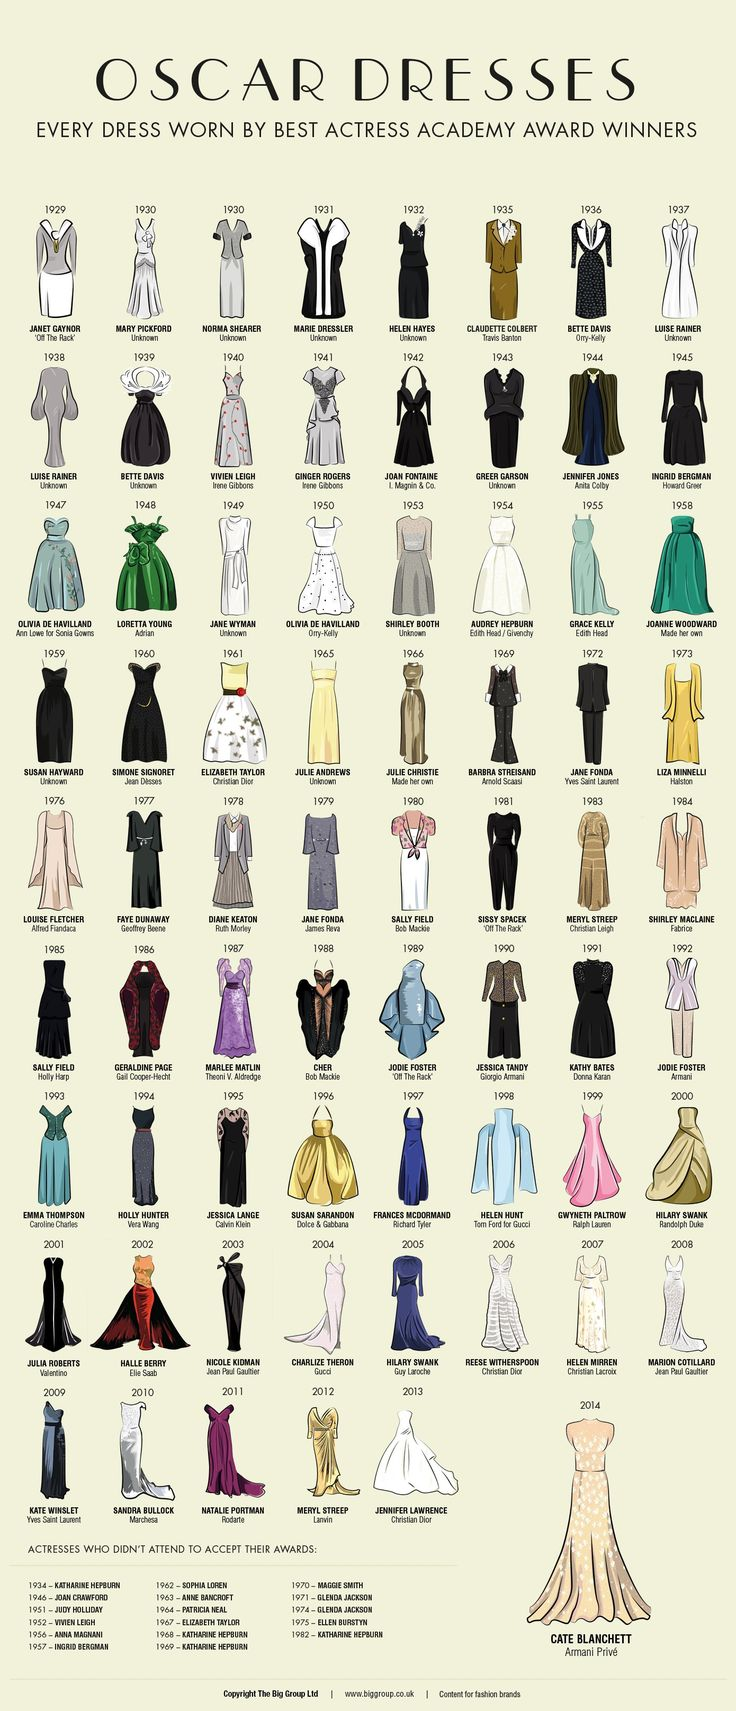 Best Actress Oscars dresses since 1929 // finally an undated version of this infographic, honestly I was pretty bitter about Norma missing from the original version